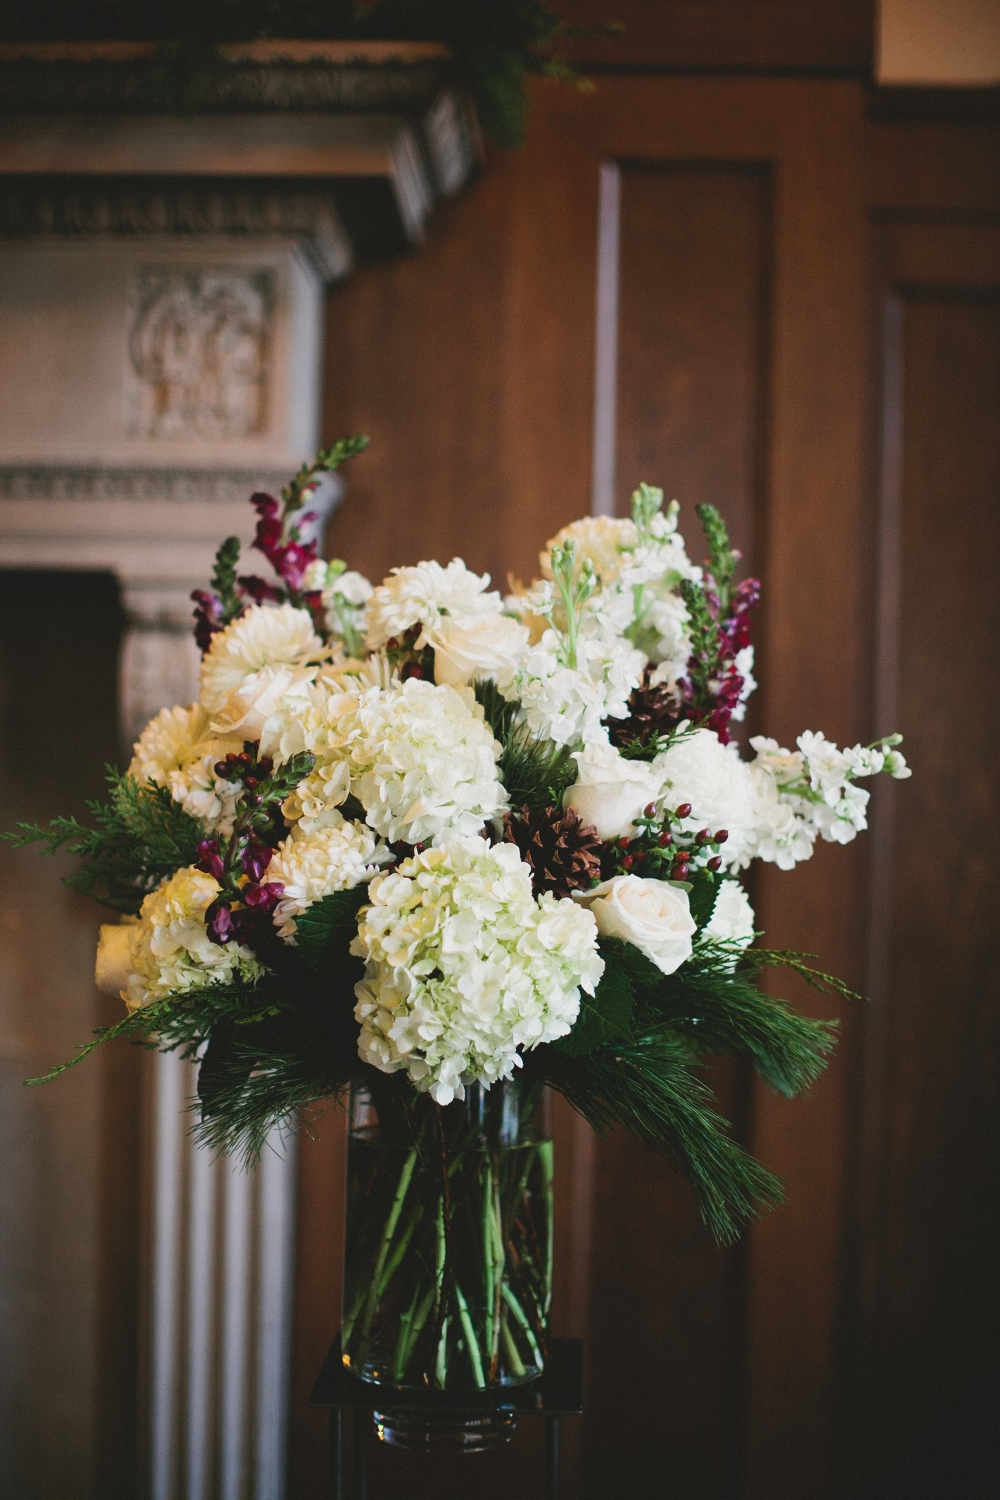 Large Flower Arrangement Large Wedding Flower Arrangement Burgundy And White Flowers Minneapolis Altar Arrangement Altar Piece Burgundy And White Large Arrangement Winter Wedding Classy Winter Wedding Elegant Winter Wedding Luna Vinca